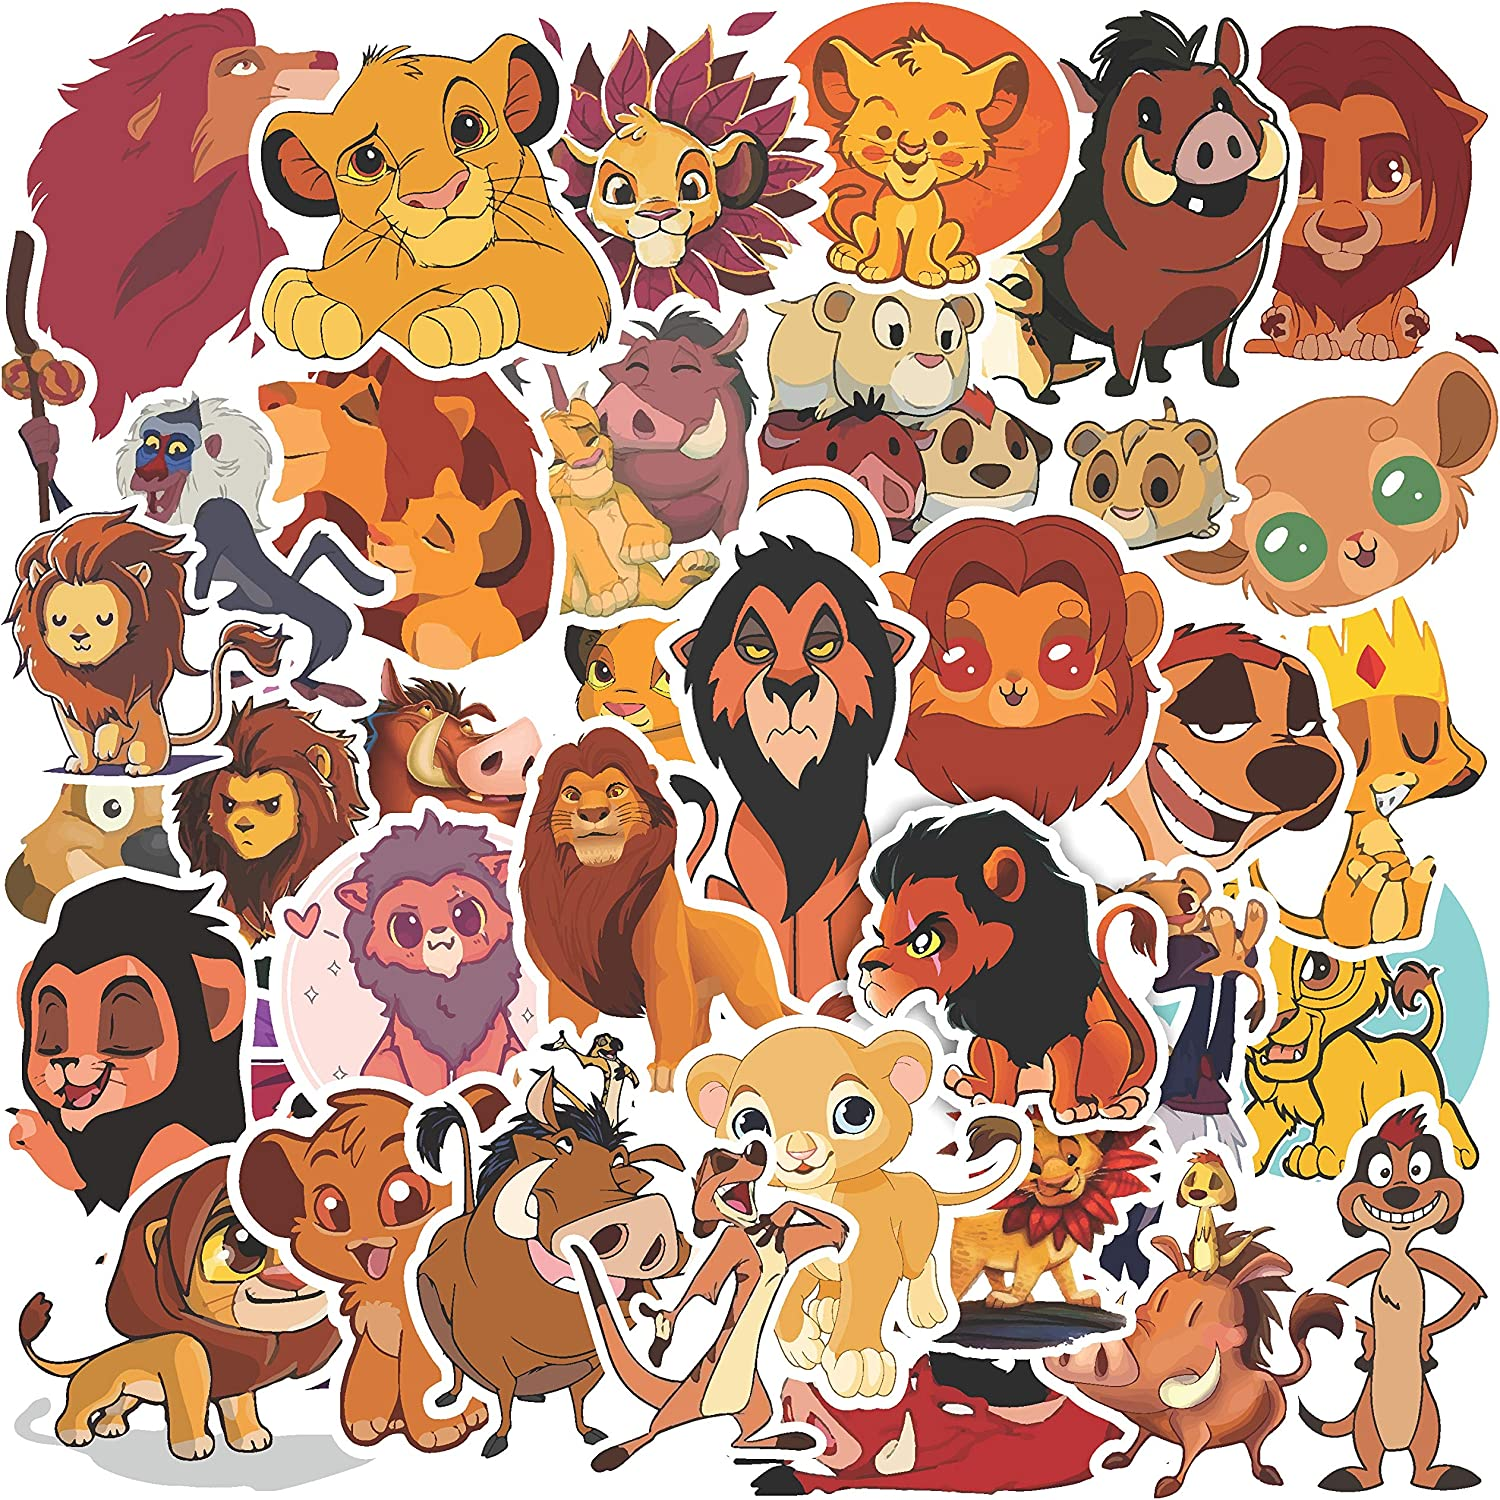 H2 Studio Lion King Stickers, Adorable Vinyl Stickers for Laptop, Skateboard Stickers, Lion King Birthday Party Supplies, Cartoon Stickers for Nursery Decor, Baby Room Decor, Wall Decals for Bedroom